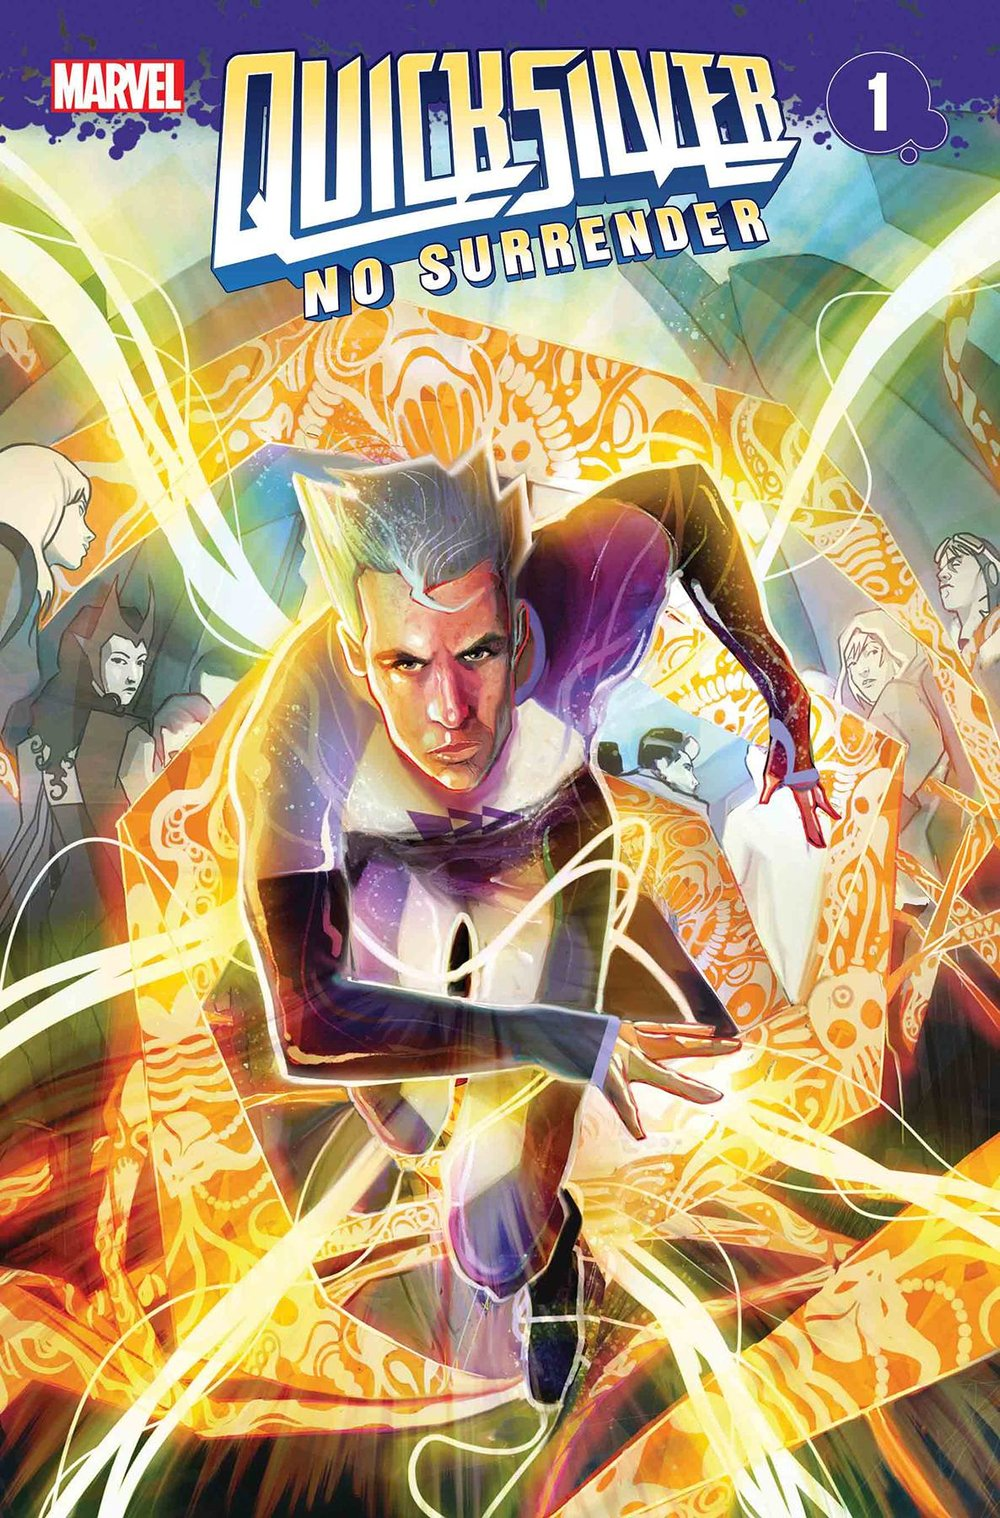 QUICKSILVER NO SURRENDER #1